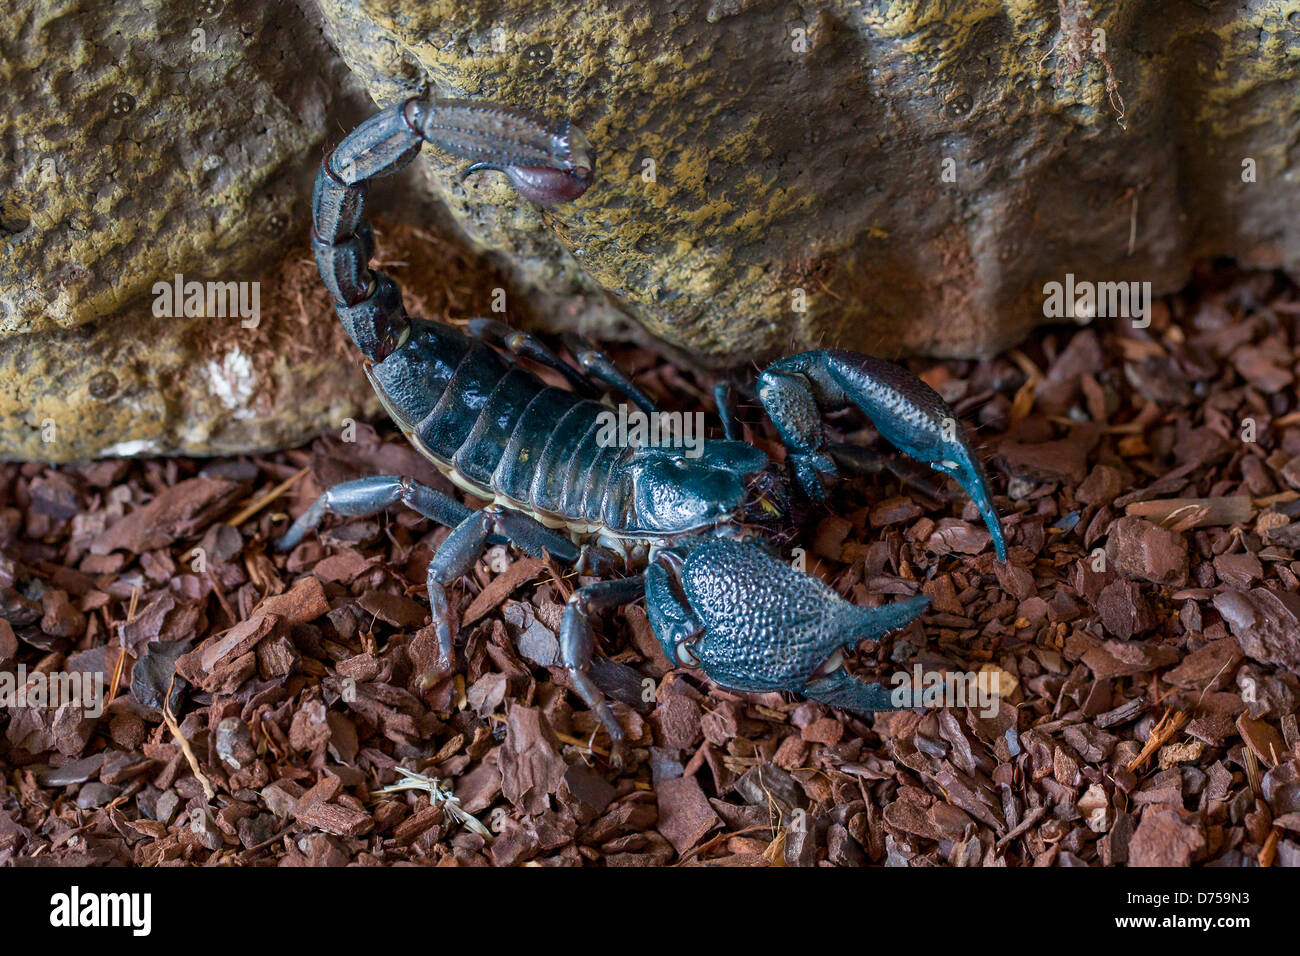 Indian Giant Forest Scorpion Stock Photo, Royalty Free ... - photo#46